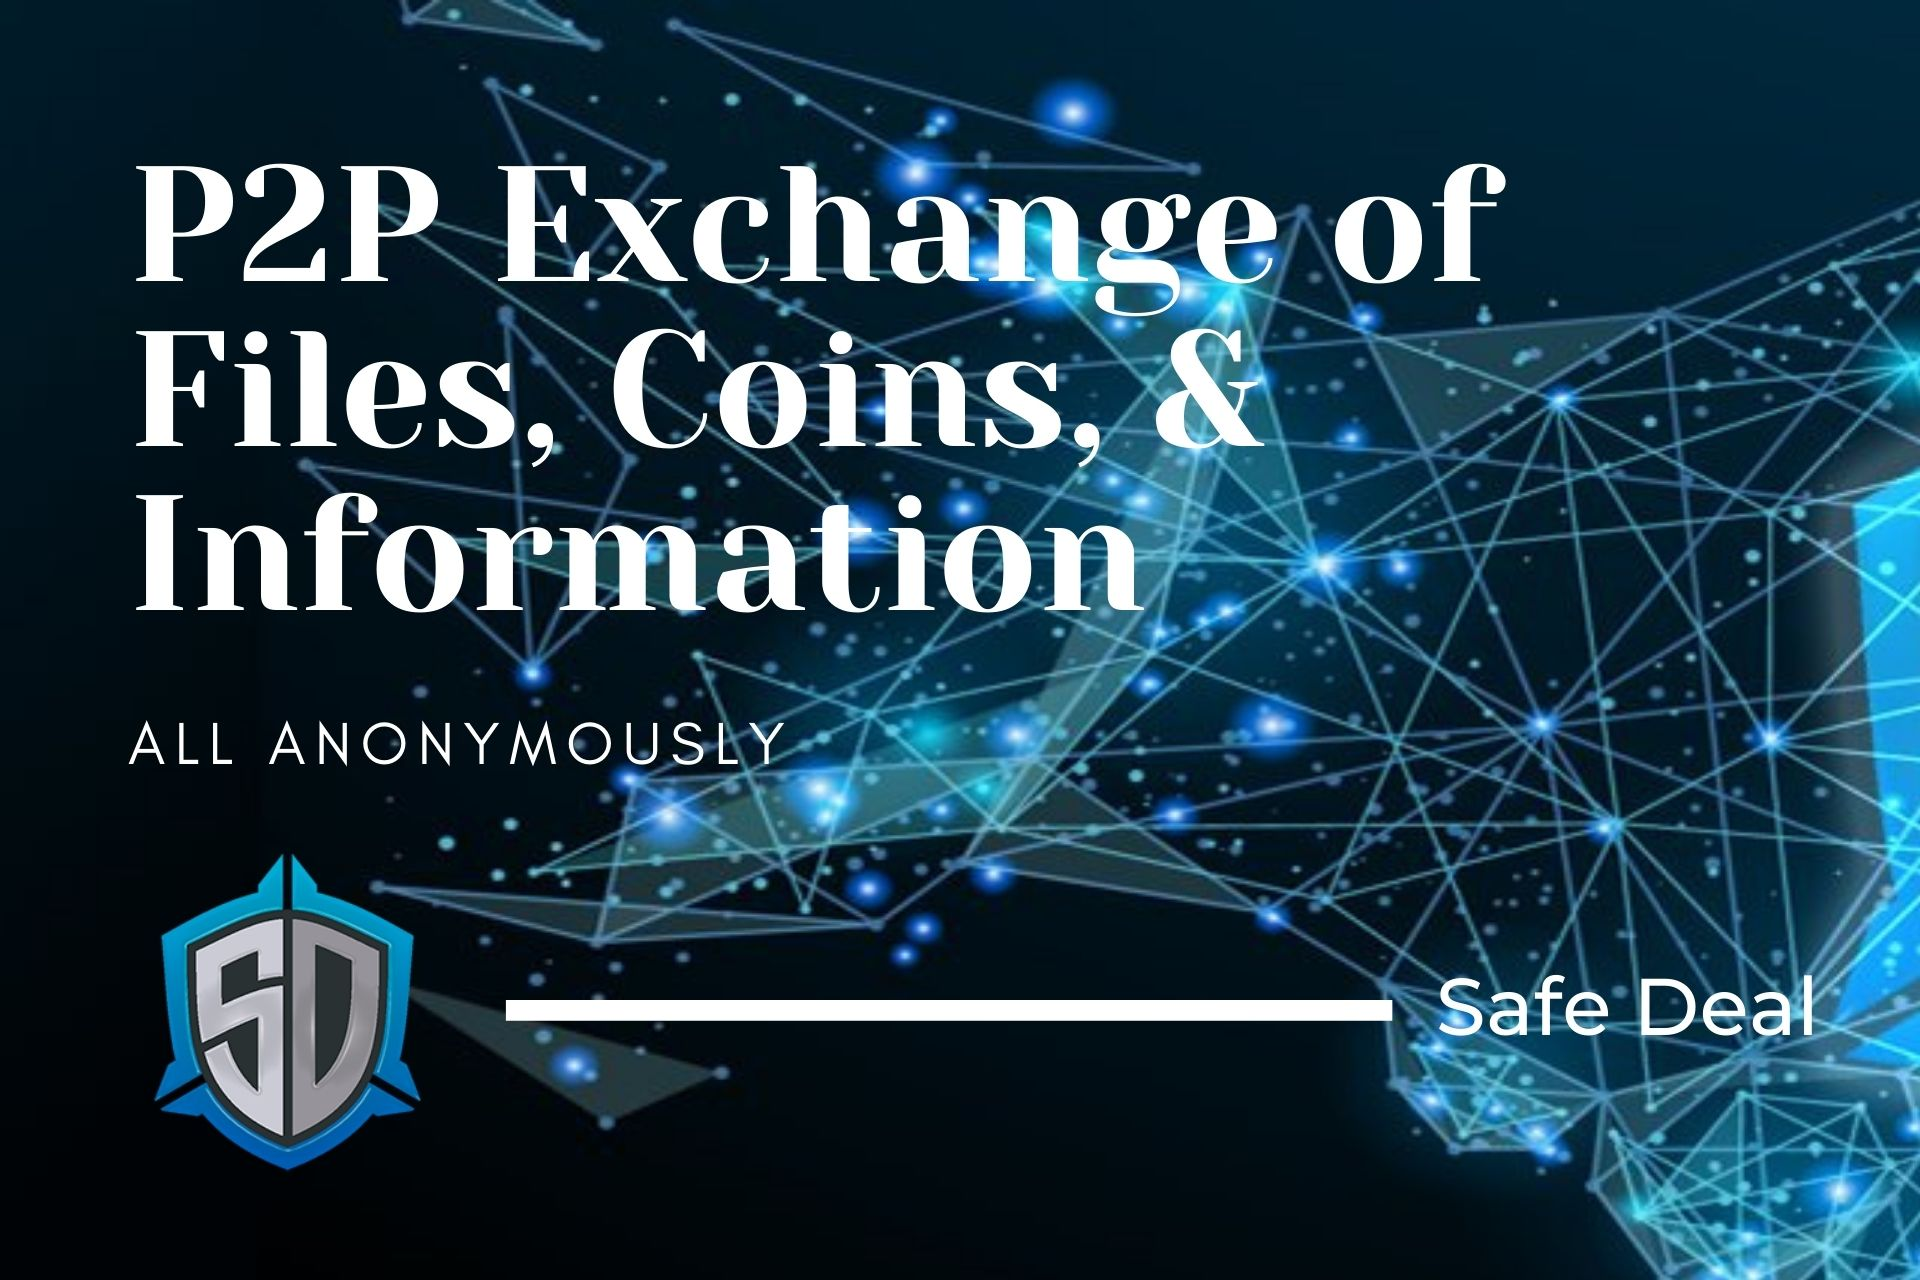 Safe Deal – Allowing P2P Exchange of Files, Coins, & Information, All Anonymously